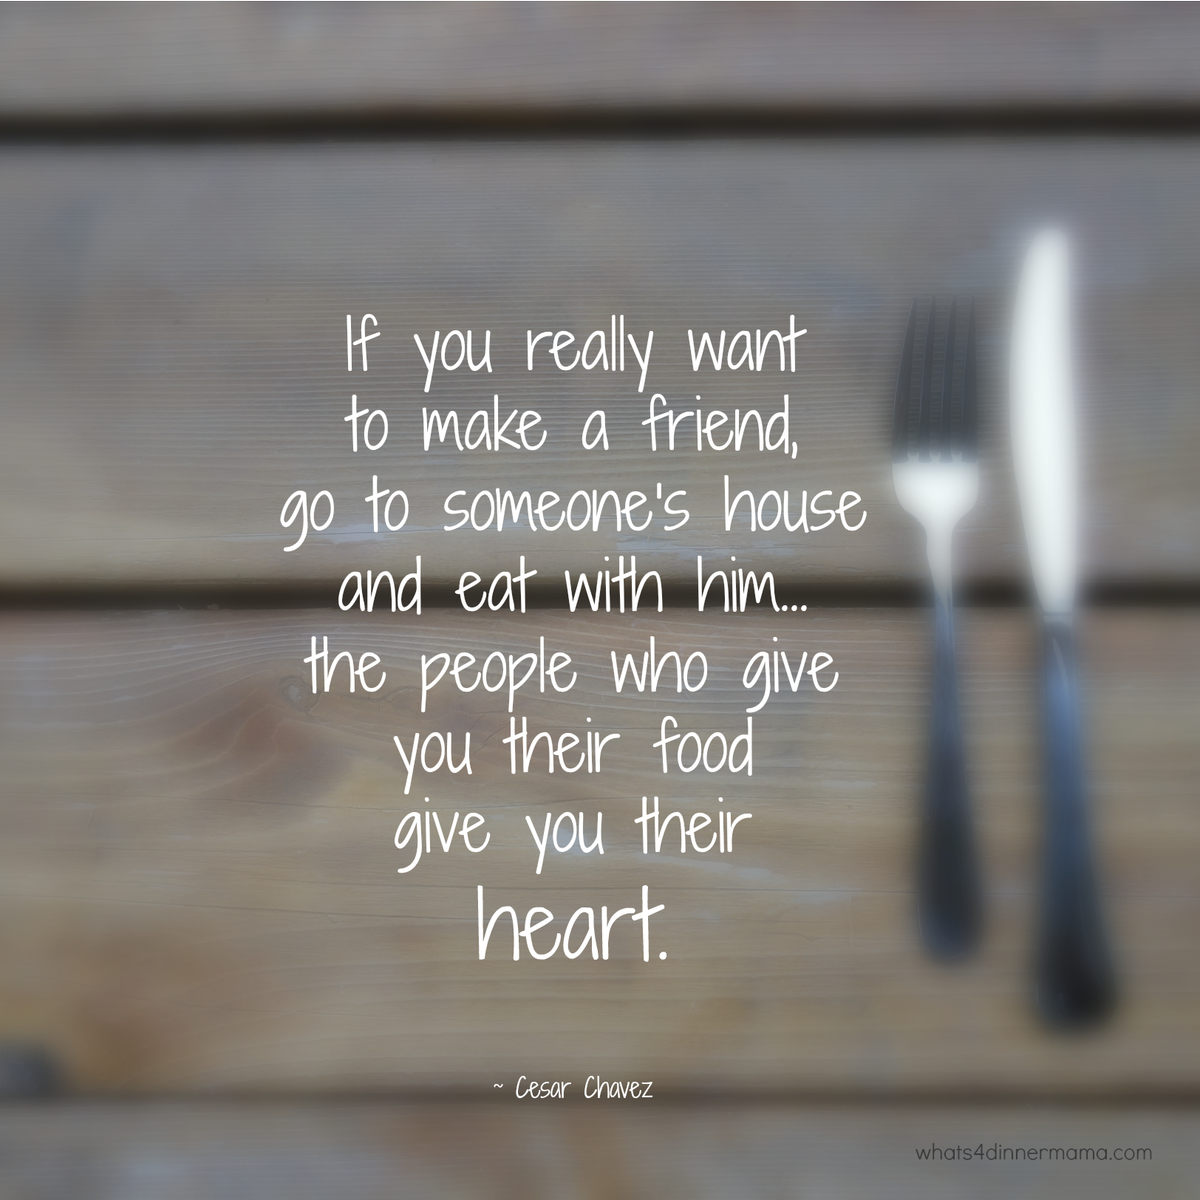 Quotes About Food And Friendship Embraceau Hashtag On Twitter